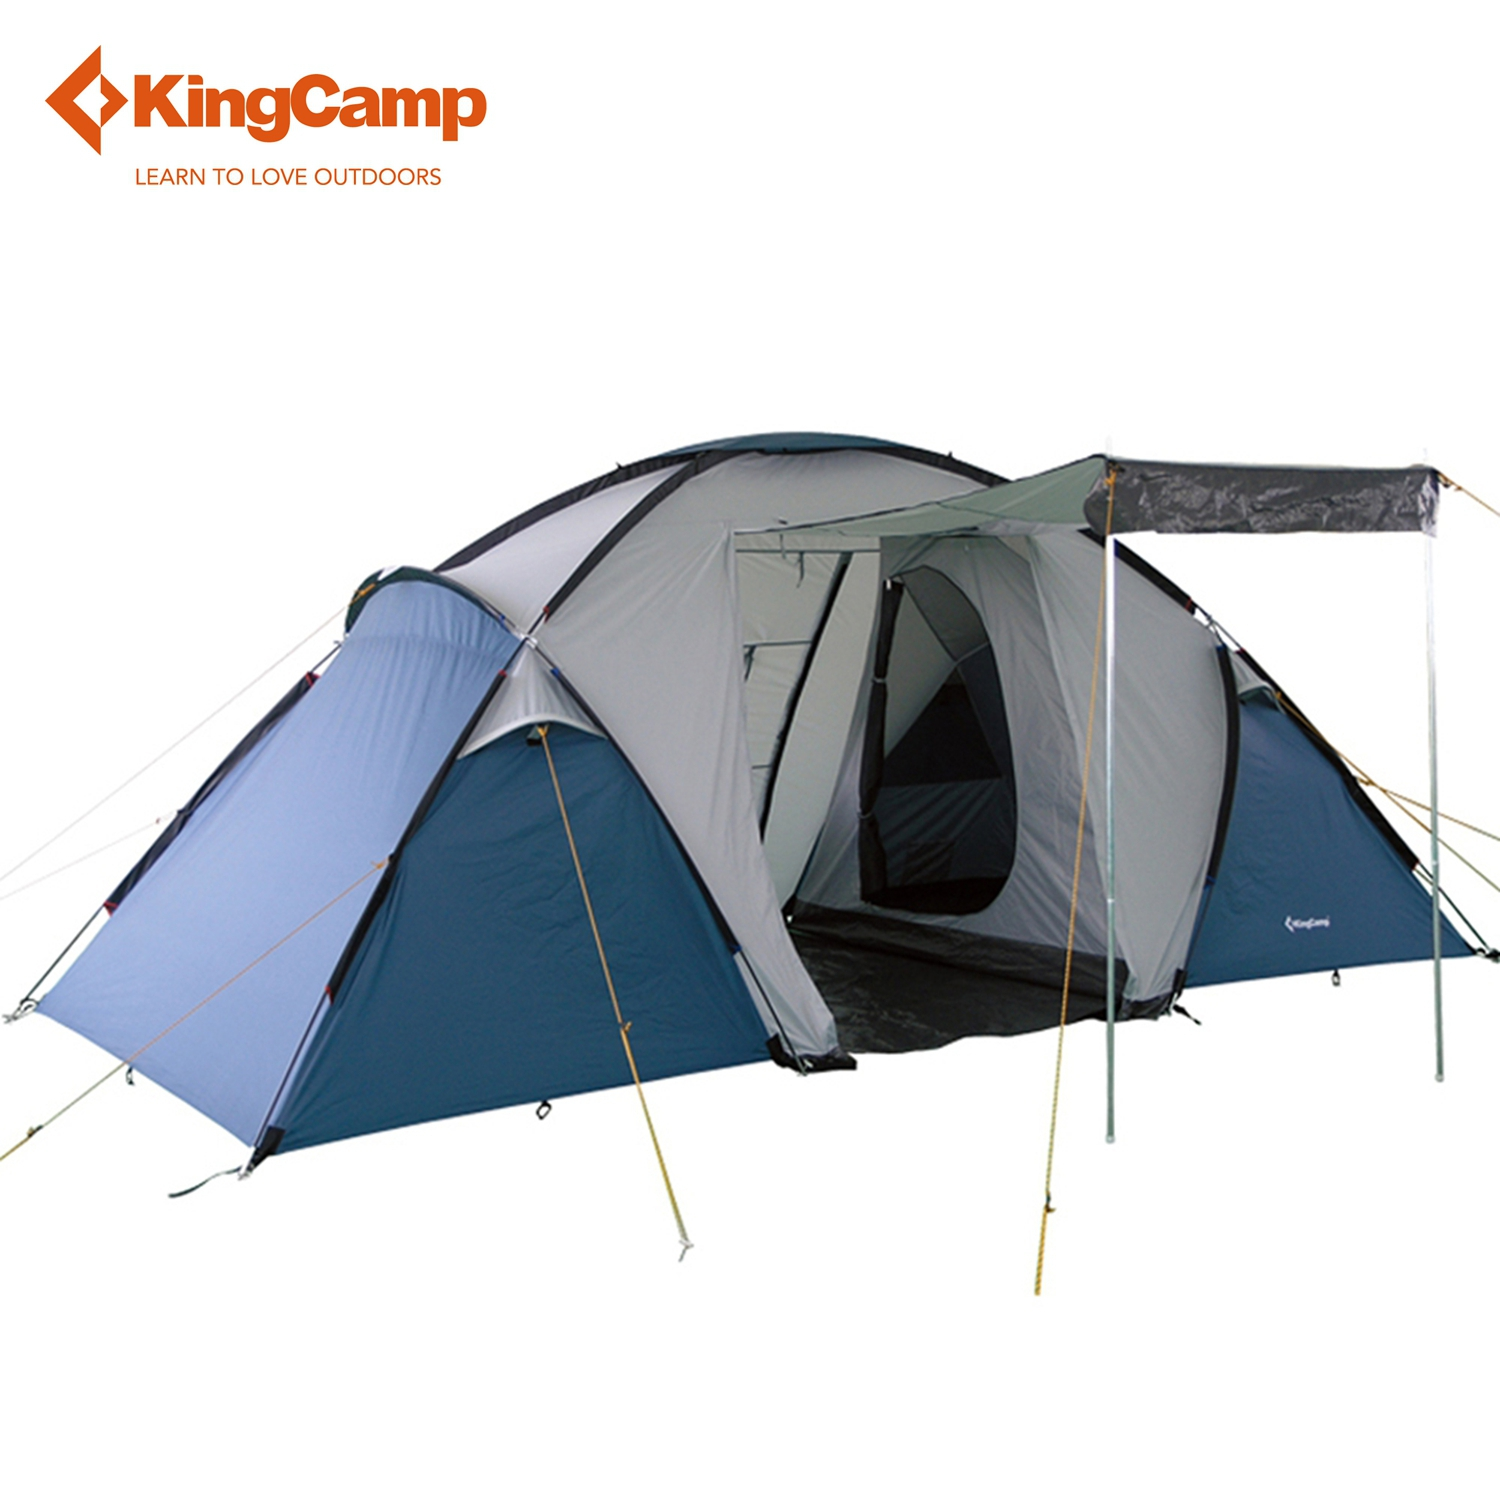 KingCamp Bari Fire-resistant 4-Person,3-Season outdoor Tent for Family Camping outdoor research silencer fire resistant gloves